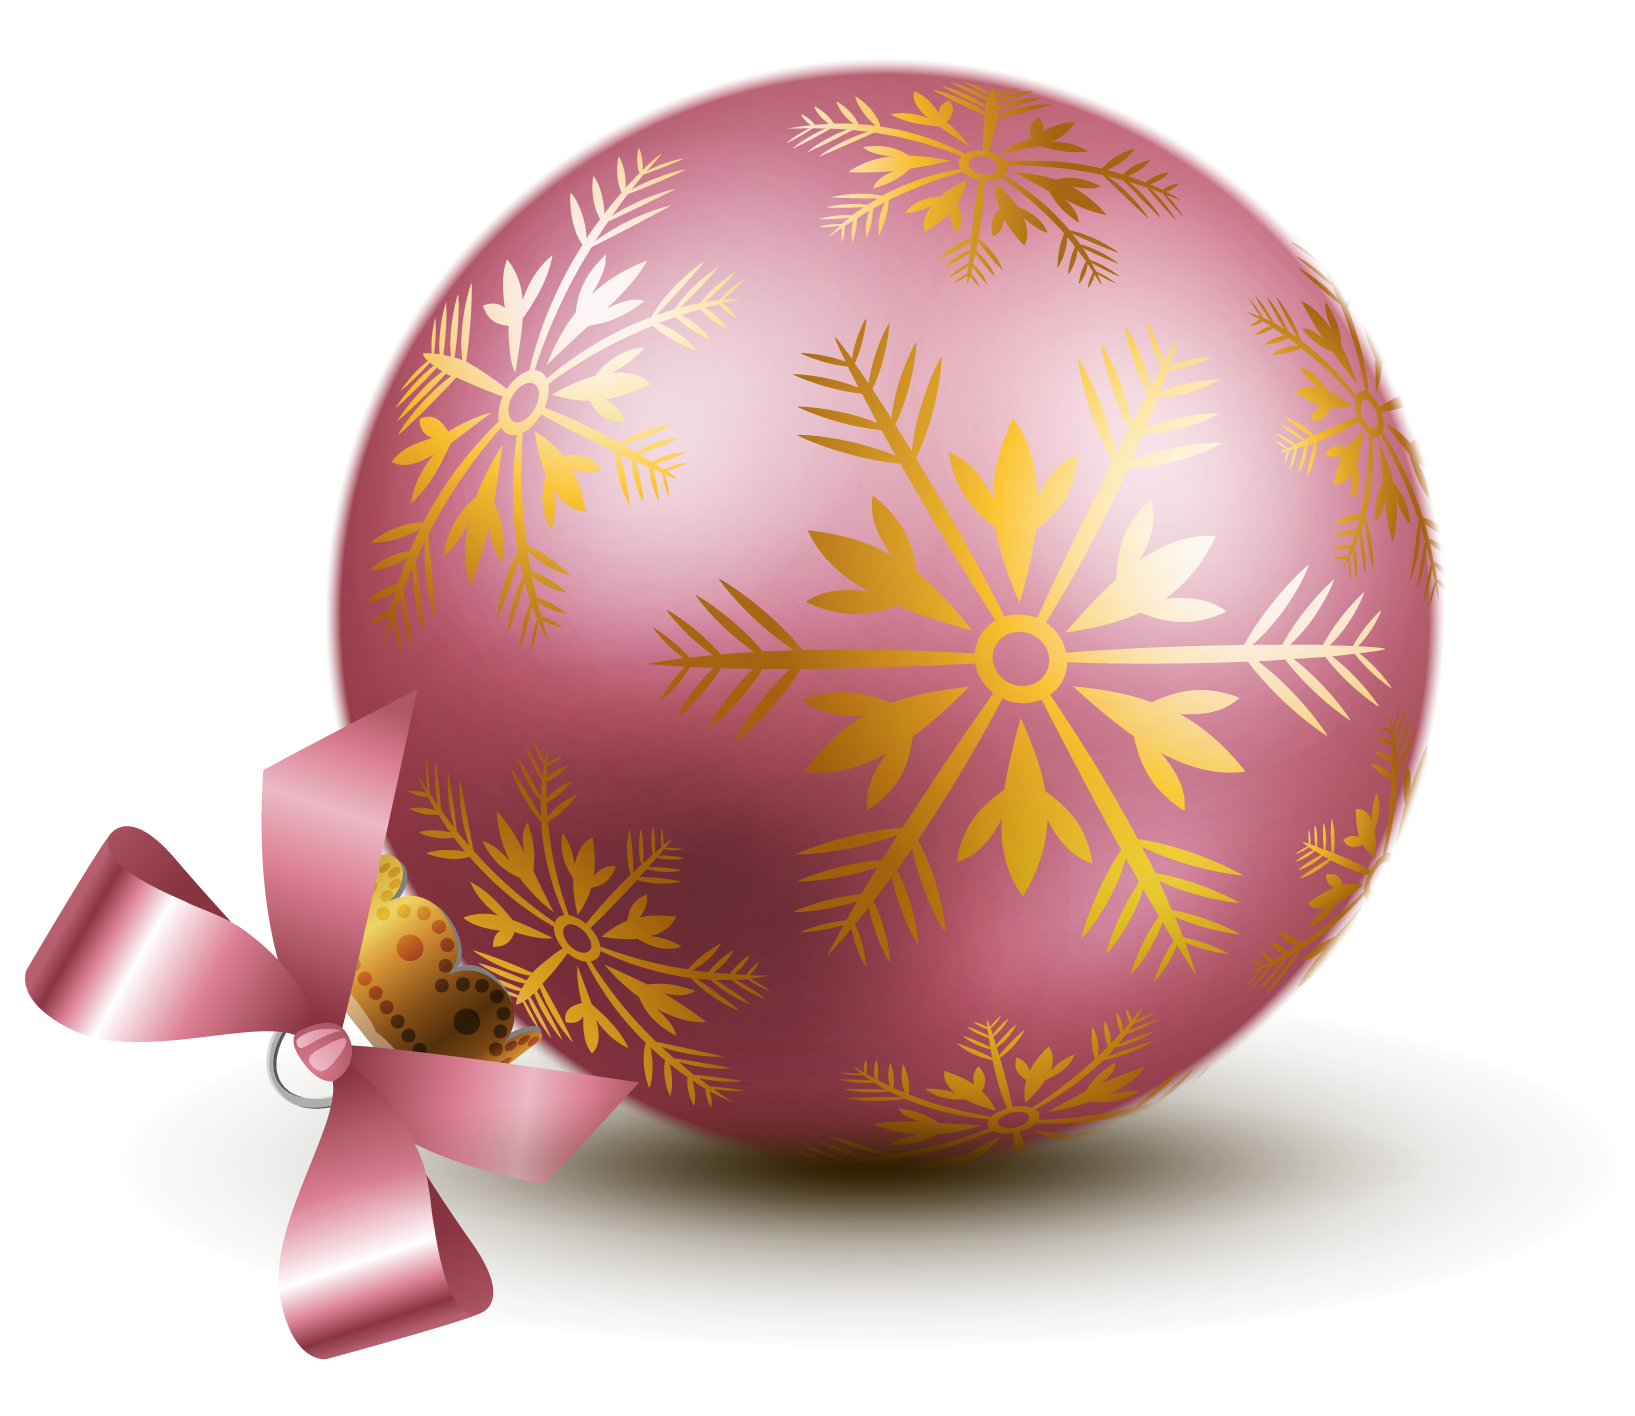 Pink christmas ornaments clipart jpg royalty free download Transparent Pink Christmas Ball Ornaments Clipart   Gallery ... jpg royalty free download